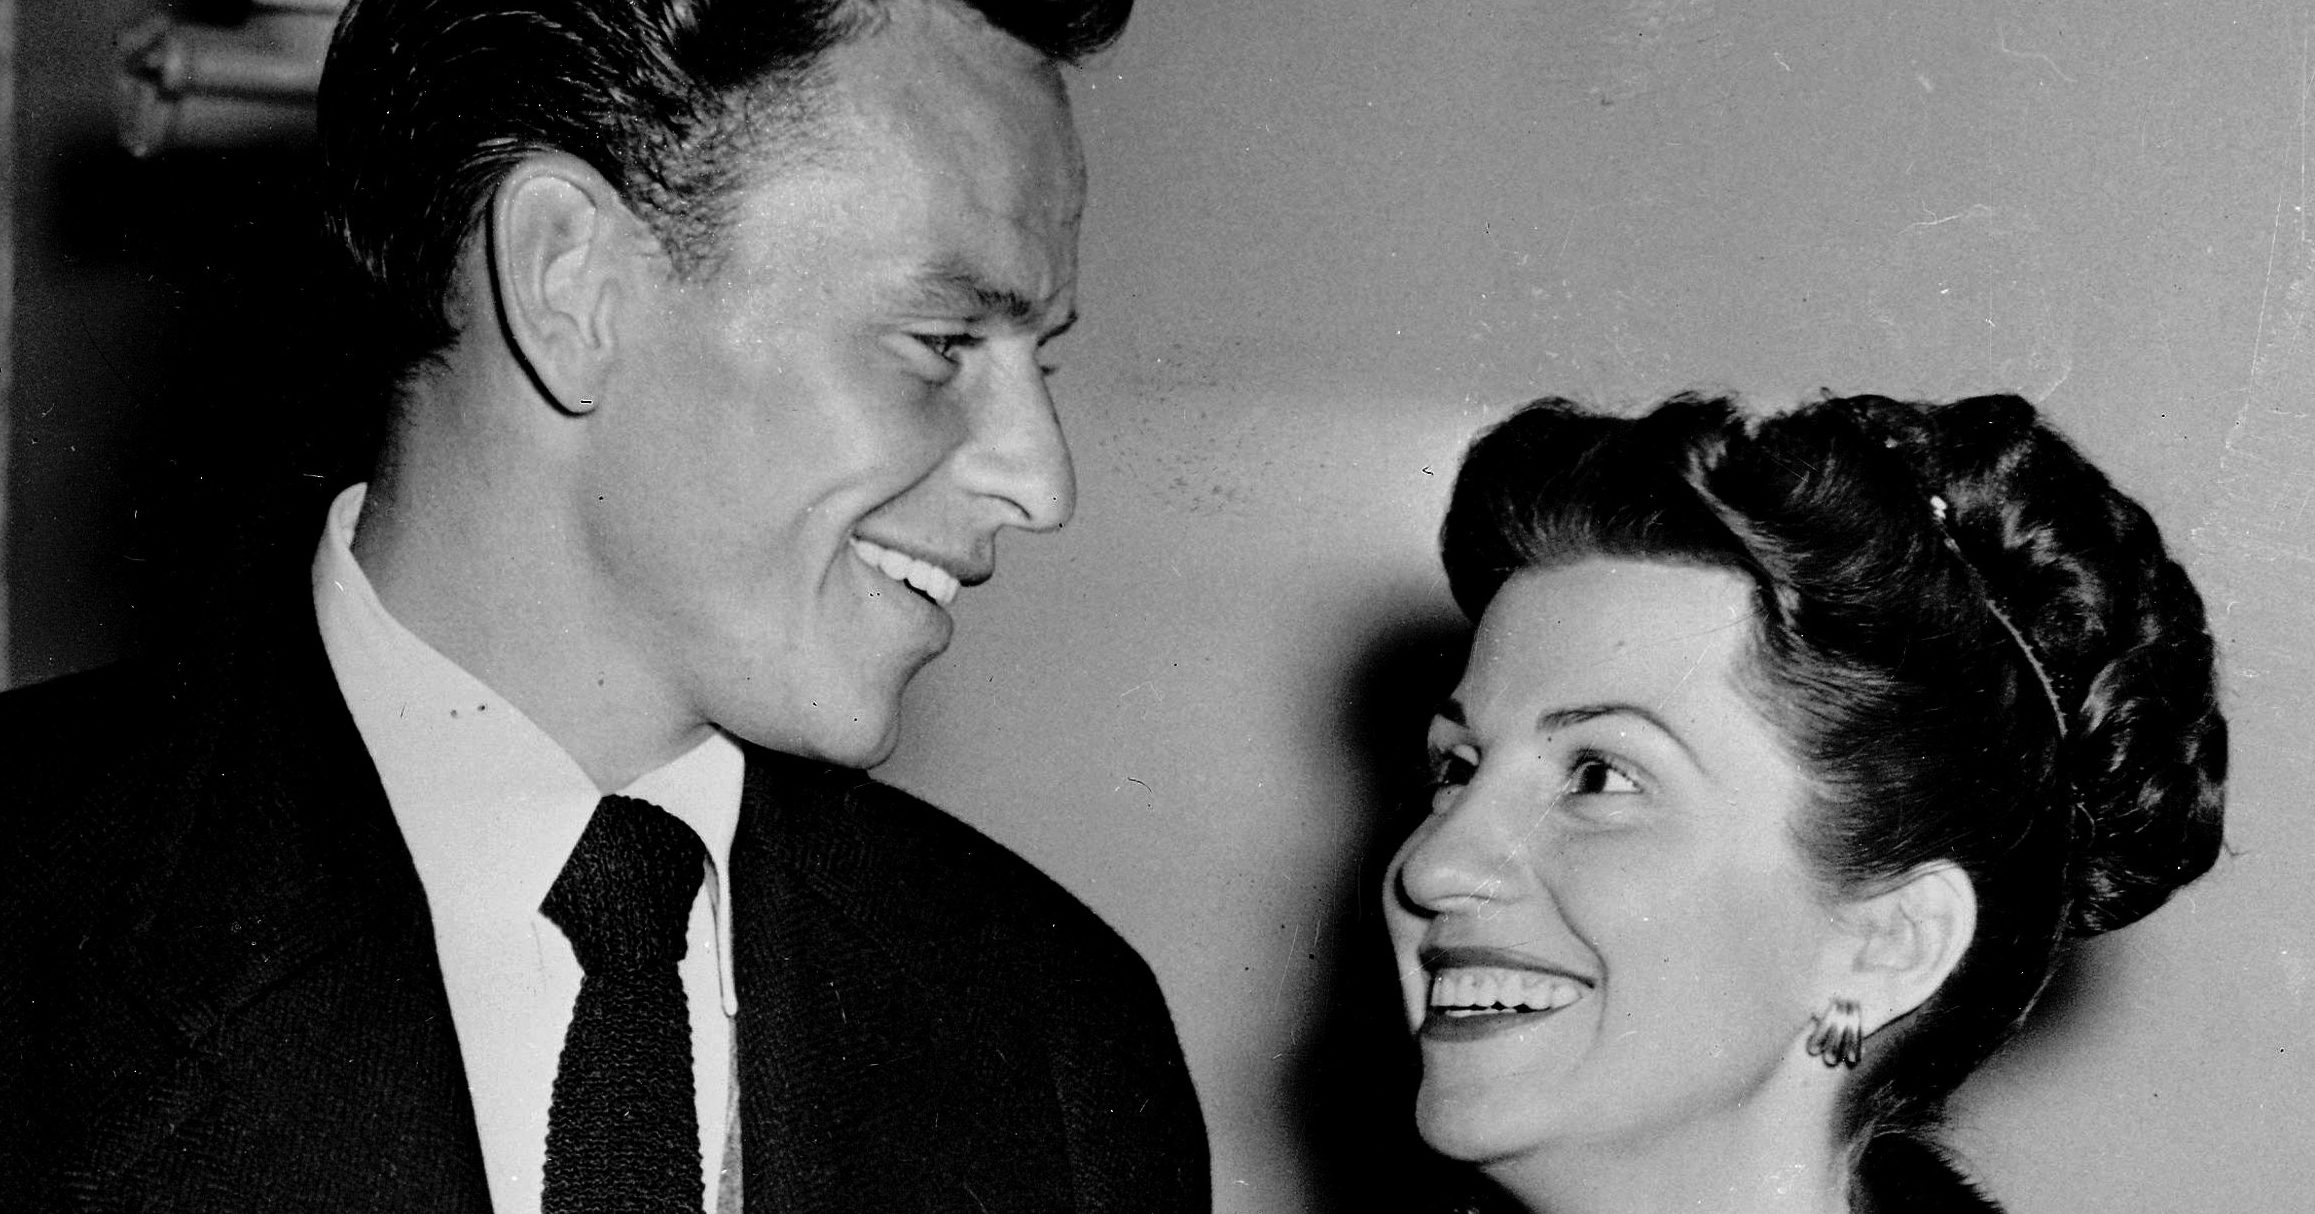 In this Oct. 23, 1946 file photo, singer Frank Sinatra and his wife Nancy smile broadly as they leave a Hollywood night club following a surprise meeting. Nancy Sinatra Sr., the childhood sweetheart of Frank Sinatra who became the first of his four wives and the mother of his three children, has died. She was 101. Her daughter, Nancy Sinatra Jr., tweeted that her mother died Friday, July 13, 2018.